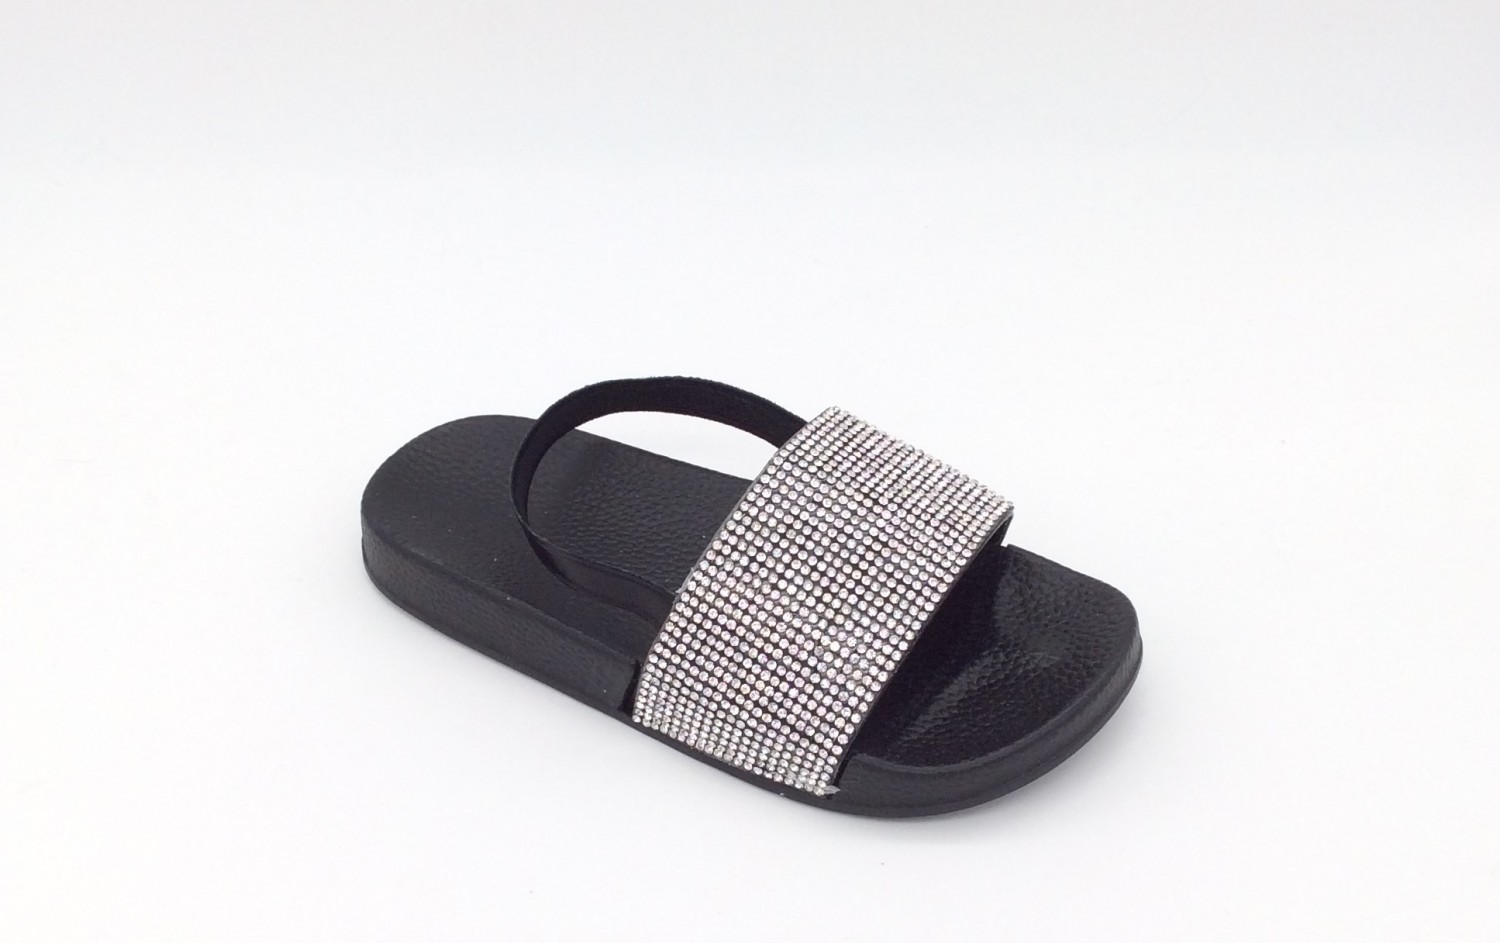 Itty Bitty Black Sparkle Sandals Sliders Baby Boutique